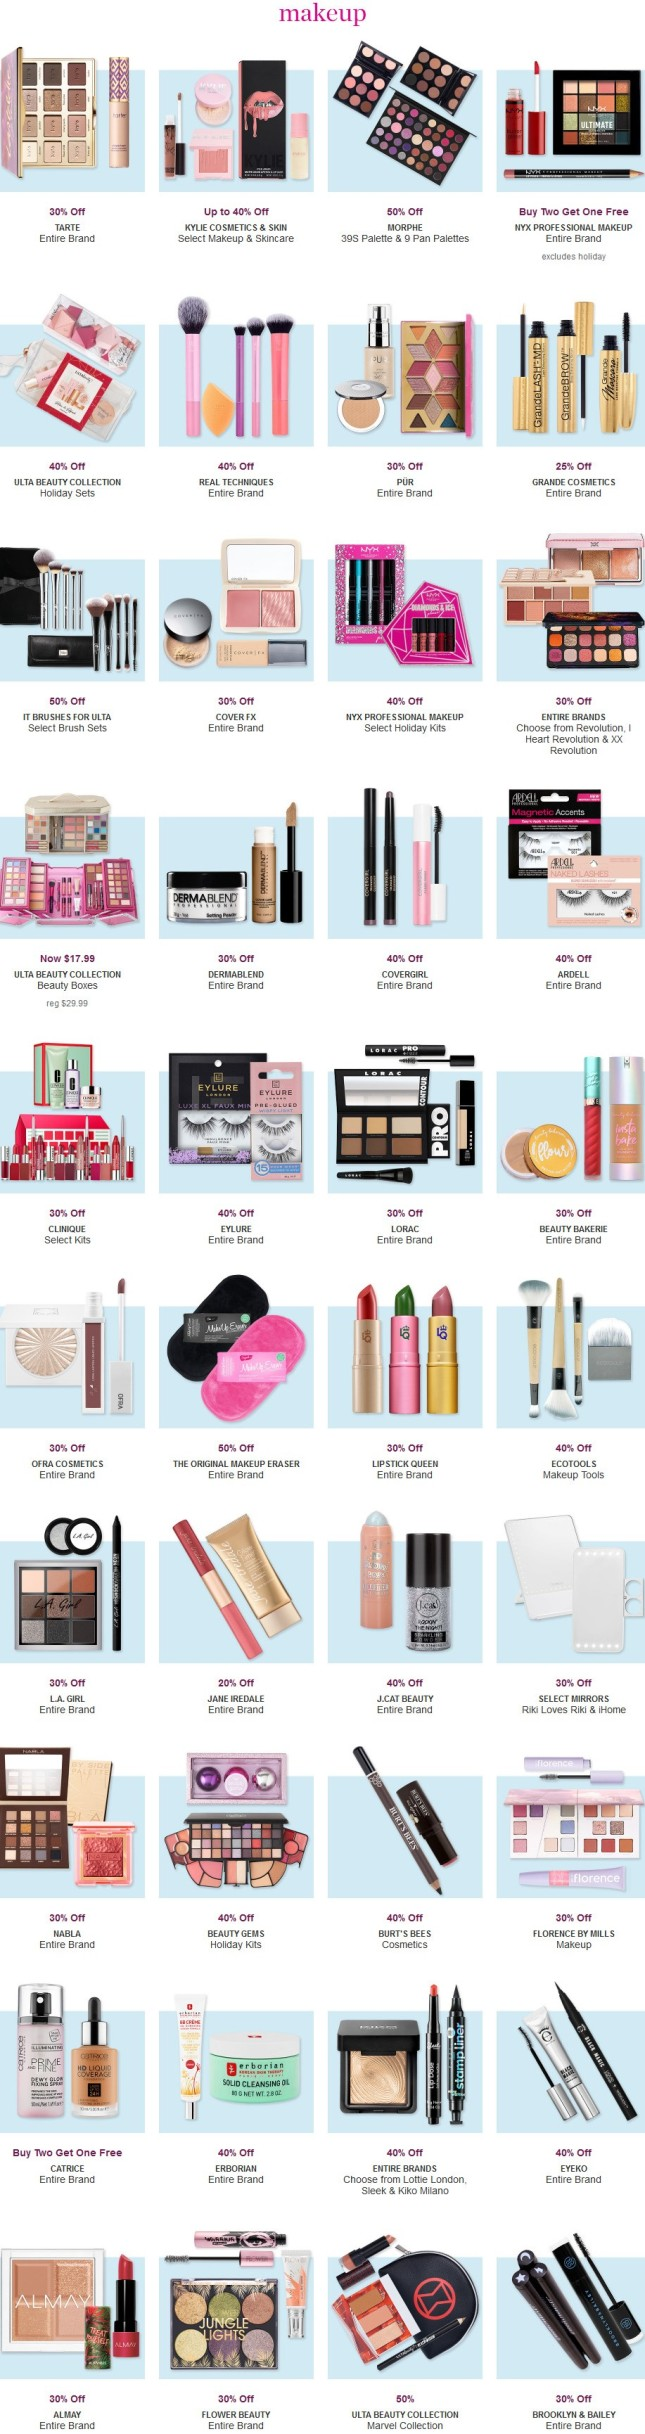 Screenshot_2020-11-29 Ulta Cyber Monday Makeup, Nail Fragrance Deals Ulta Beauty (2)